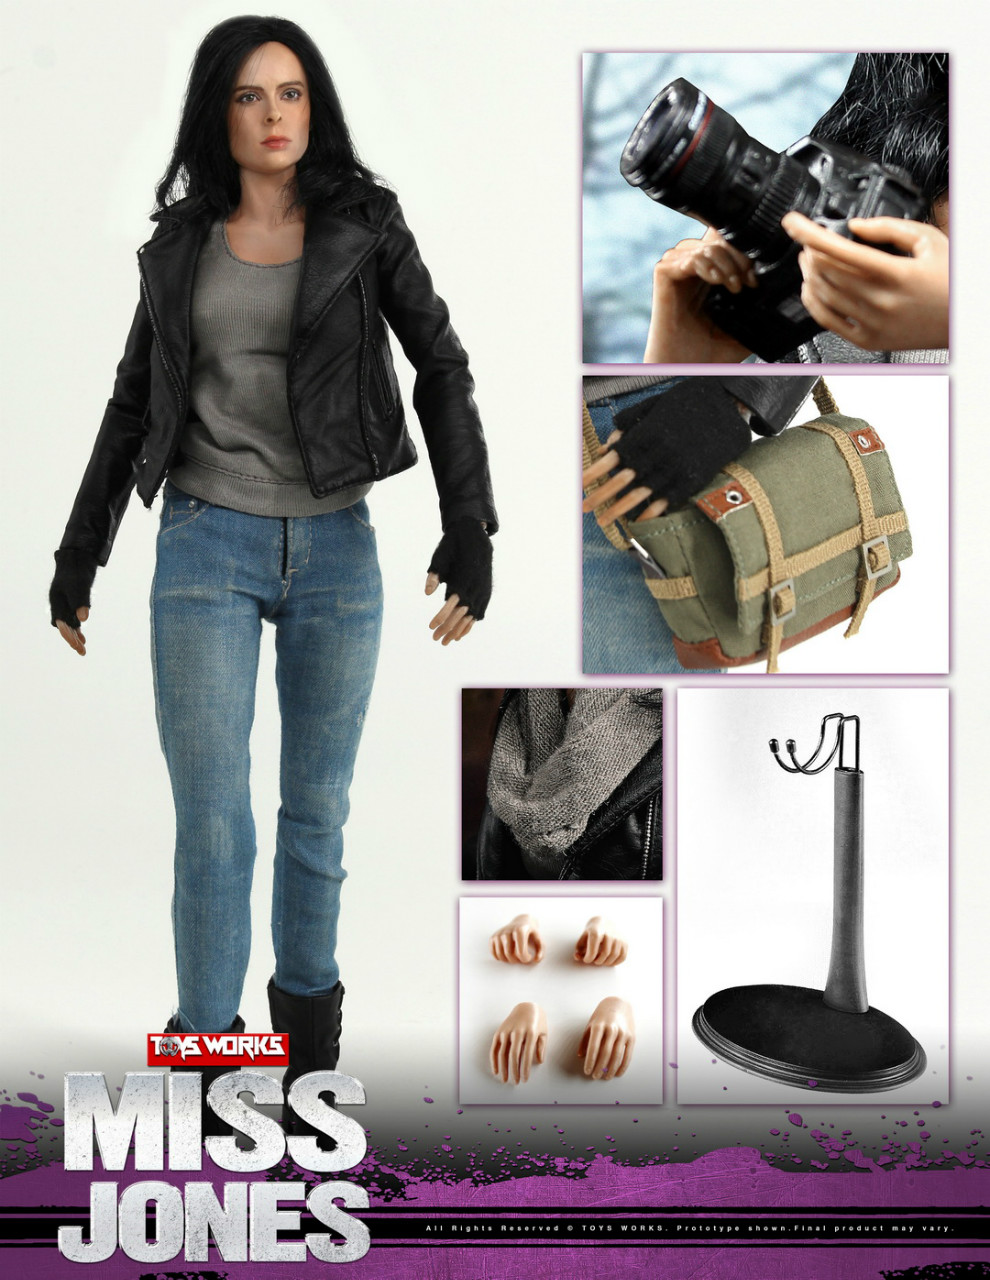 NEW PRODUCT: TOYS WORKS New: 1/6 Miss Jones Miss Jones can move TW007 19164310